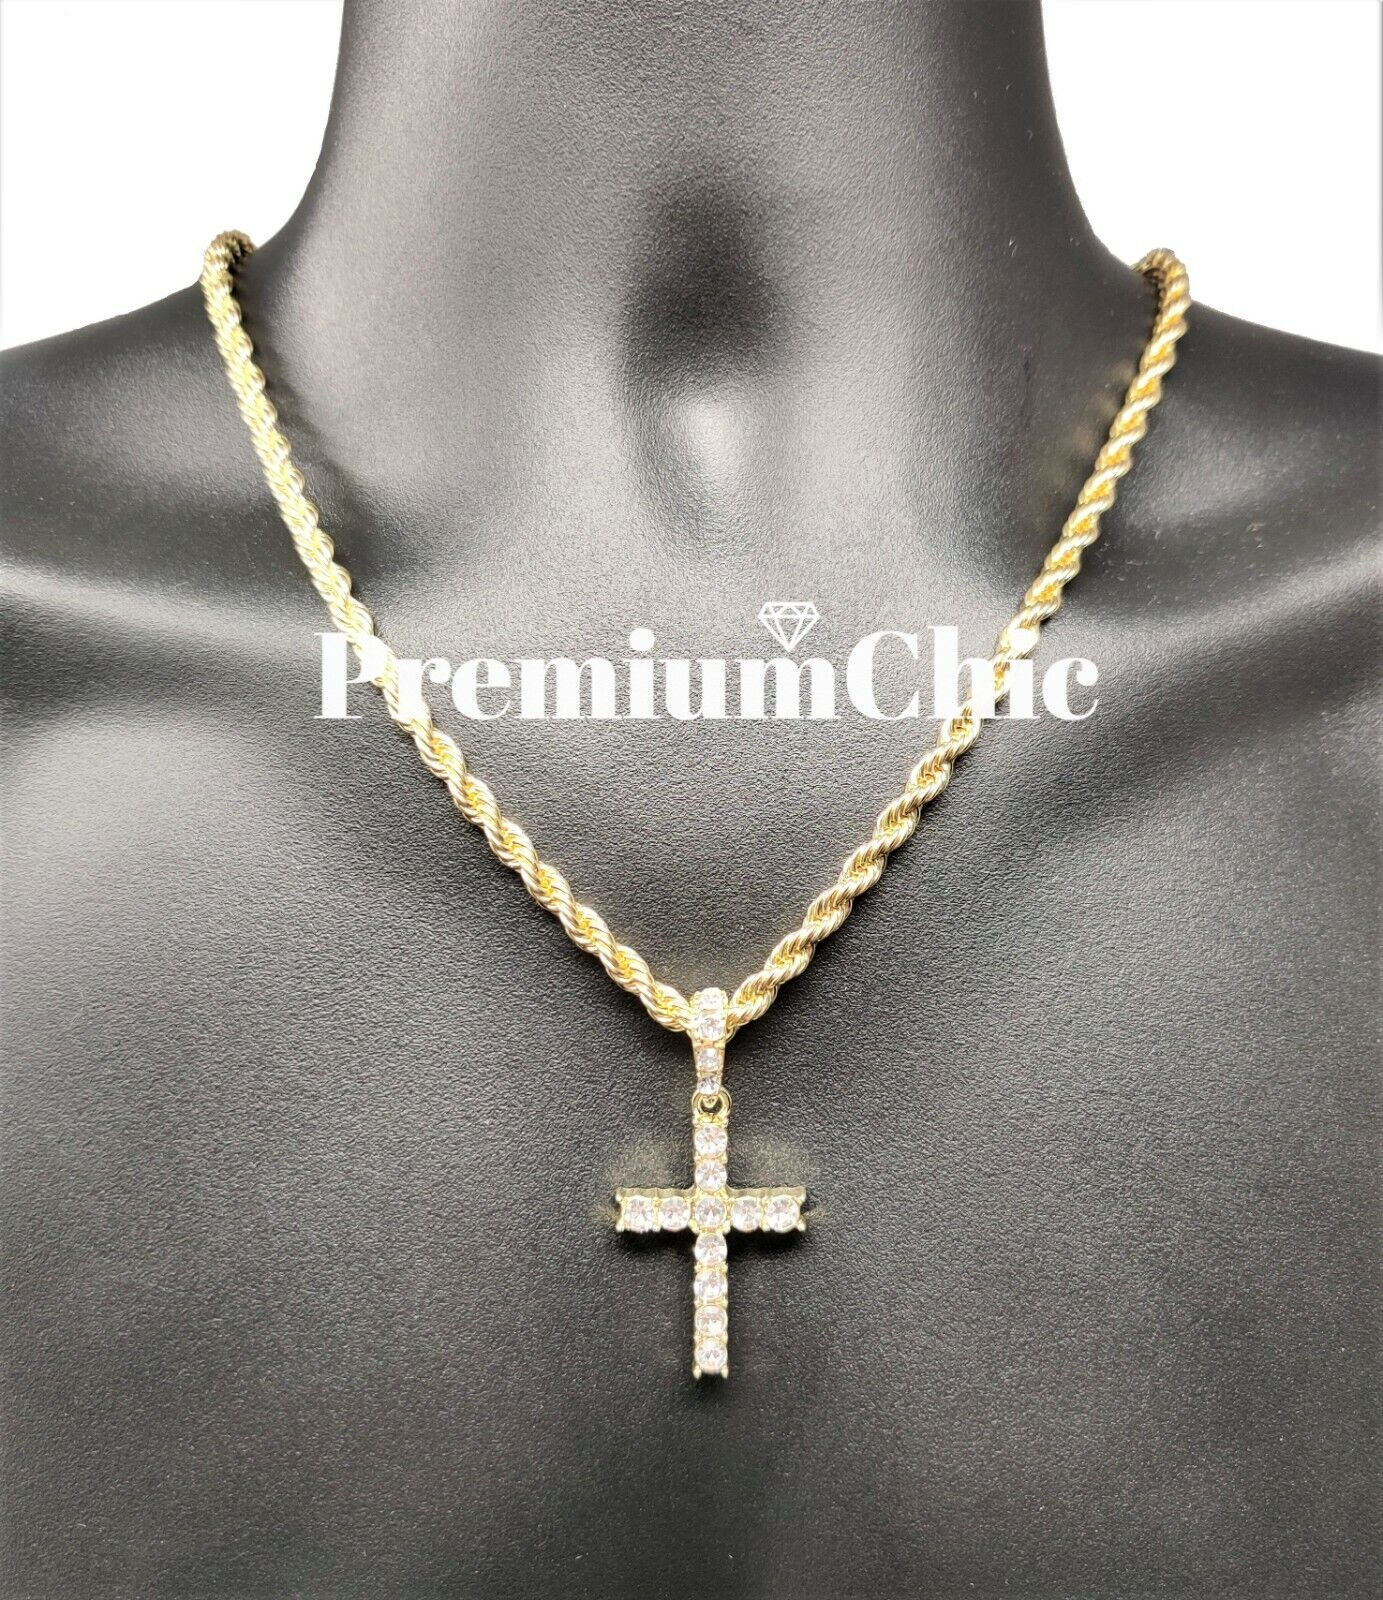 Jewellery - Iced Cross Pendant with 5MM Rope Chain Necklace Mens Hip Hop Gold Plated Jewelry